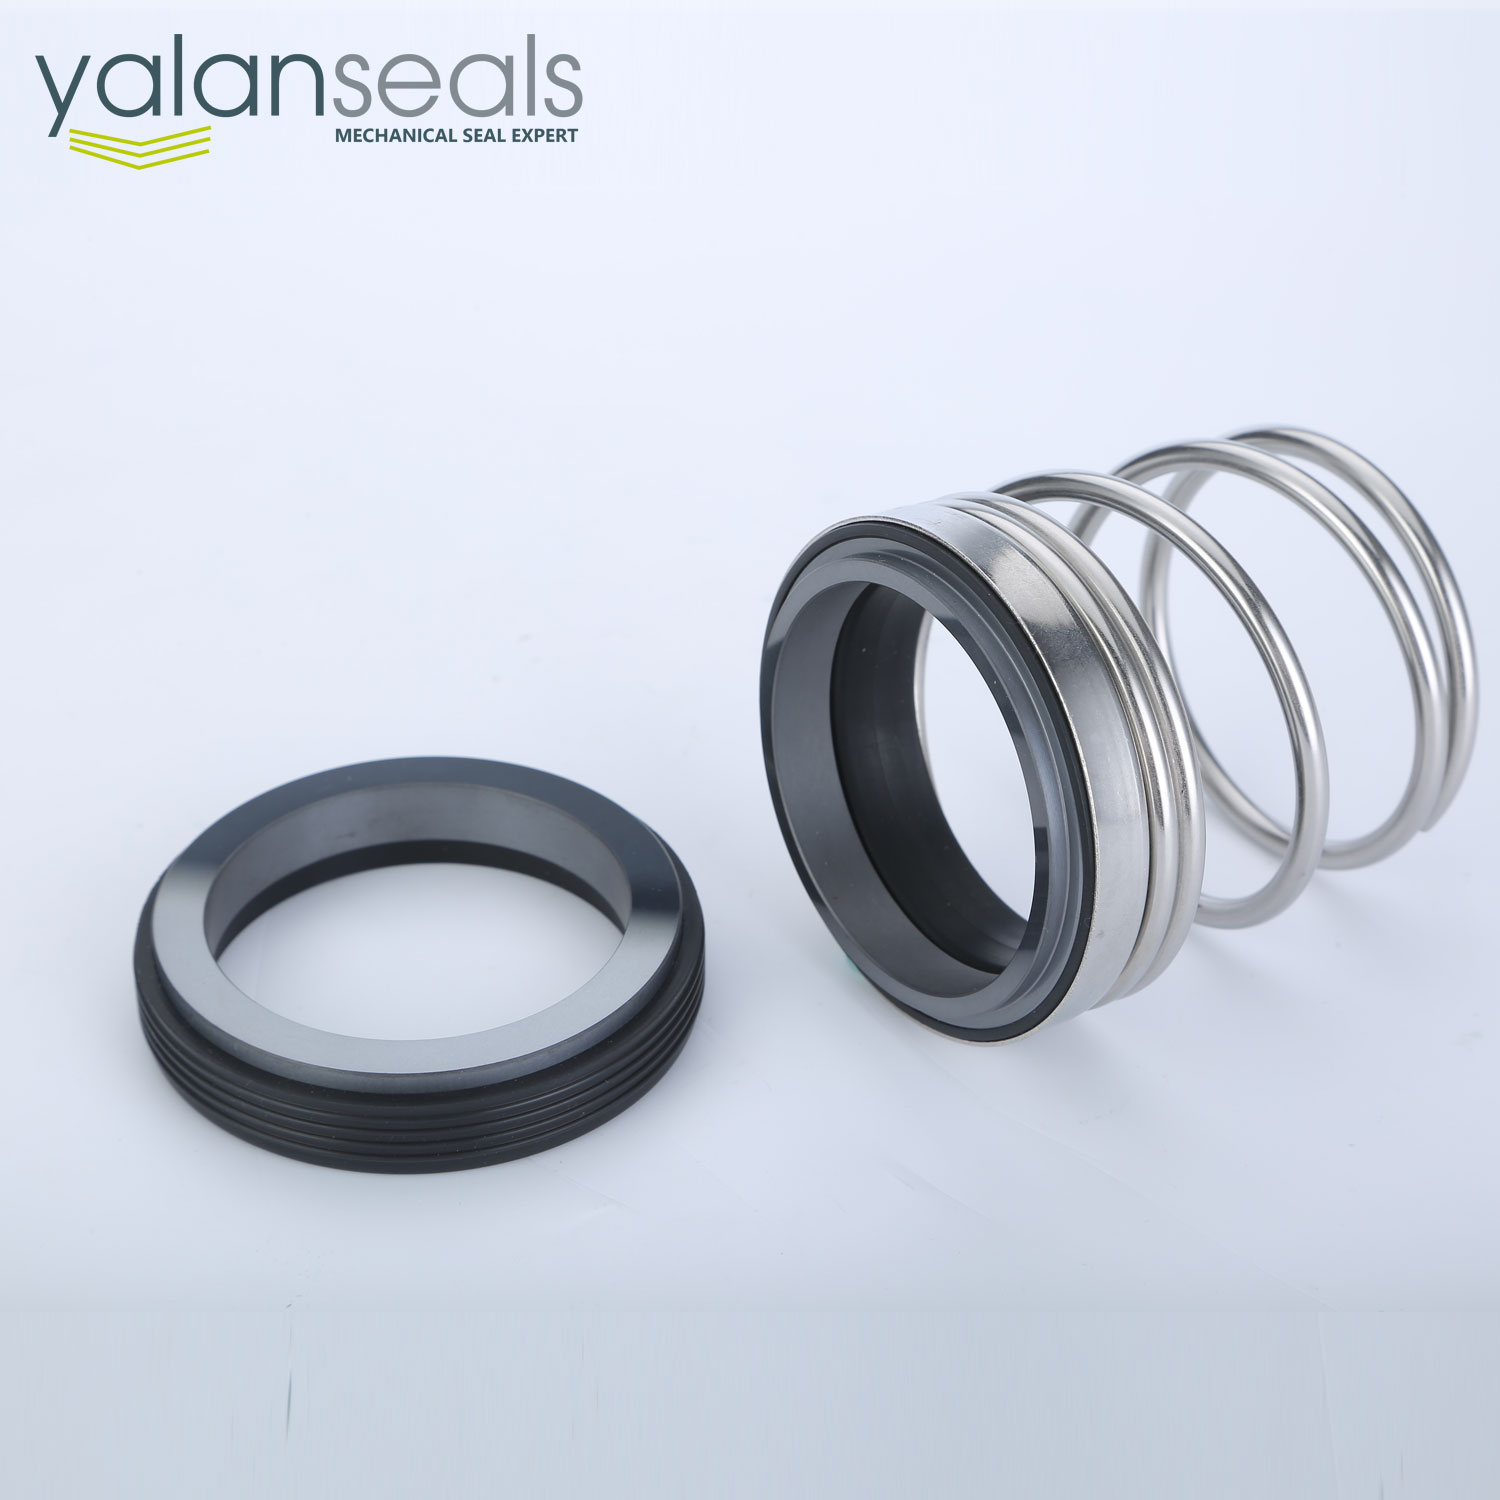 MG9 Elastomer Bellow Mechanical Seal